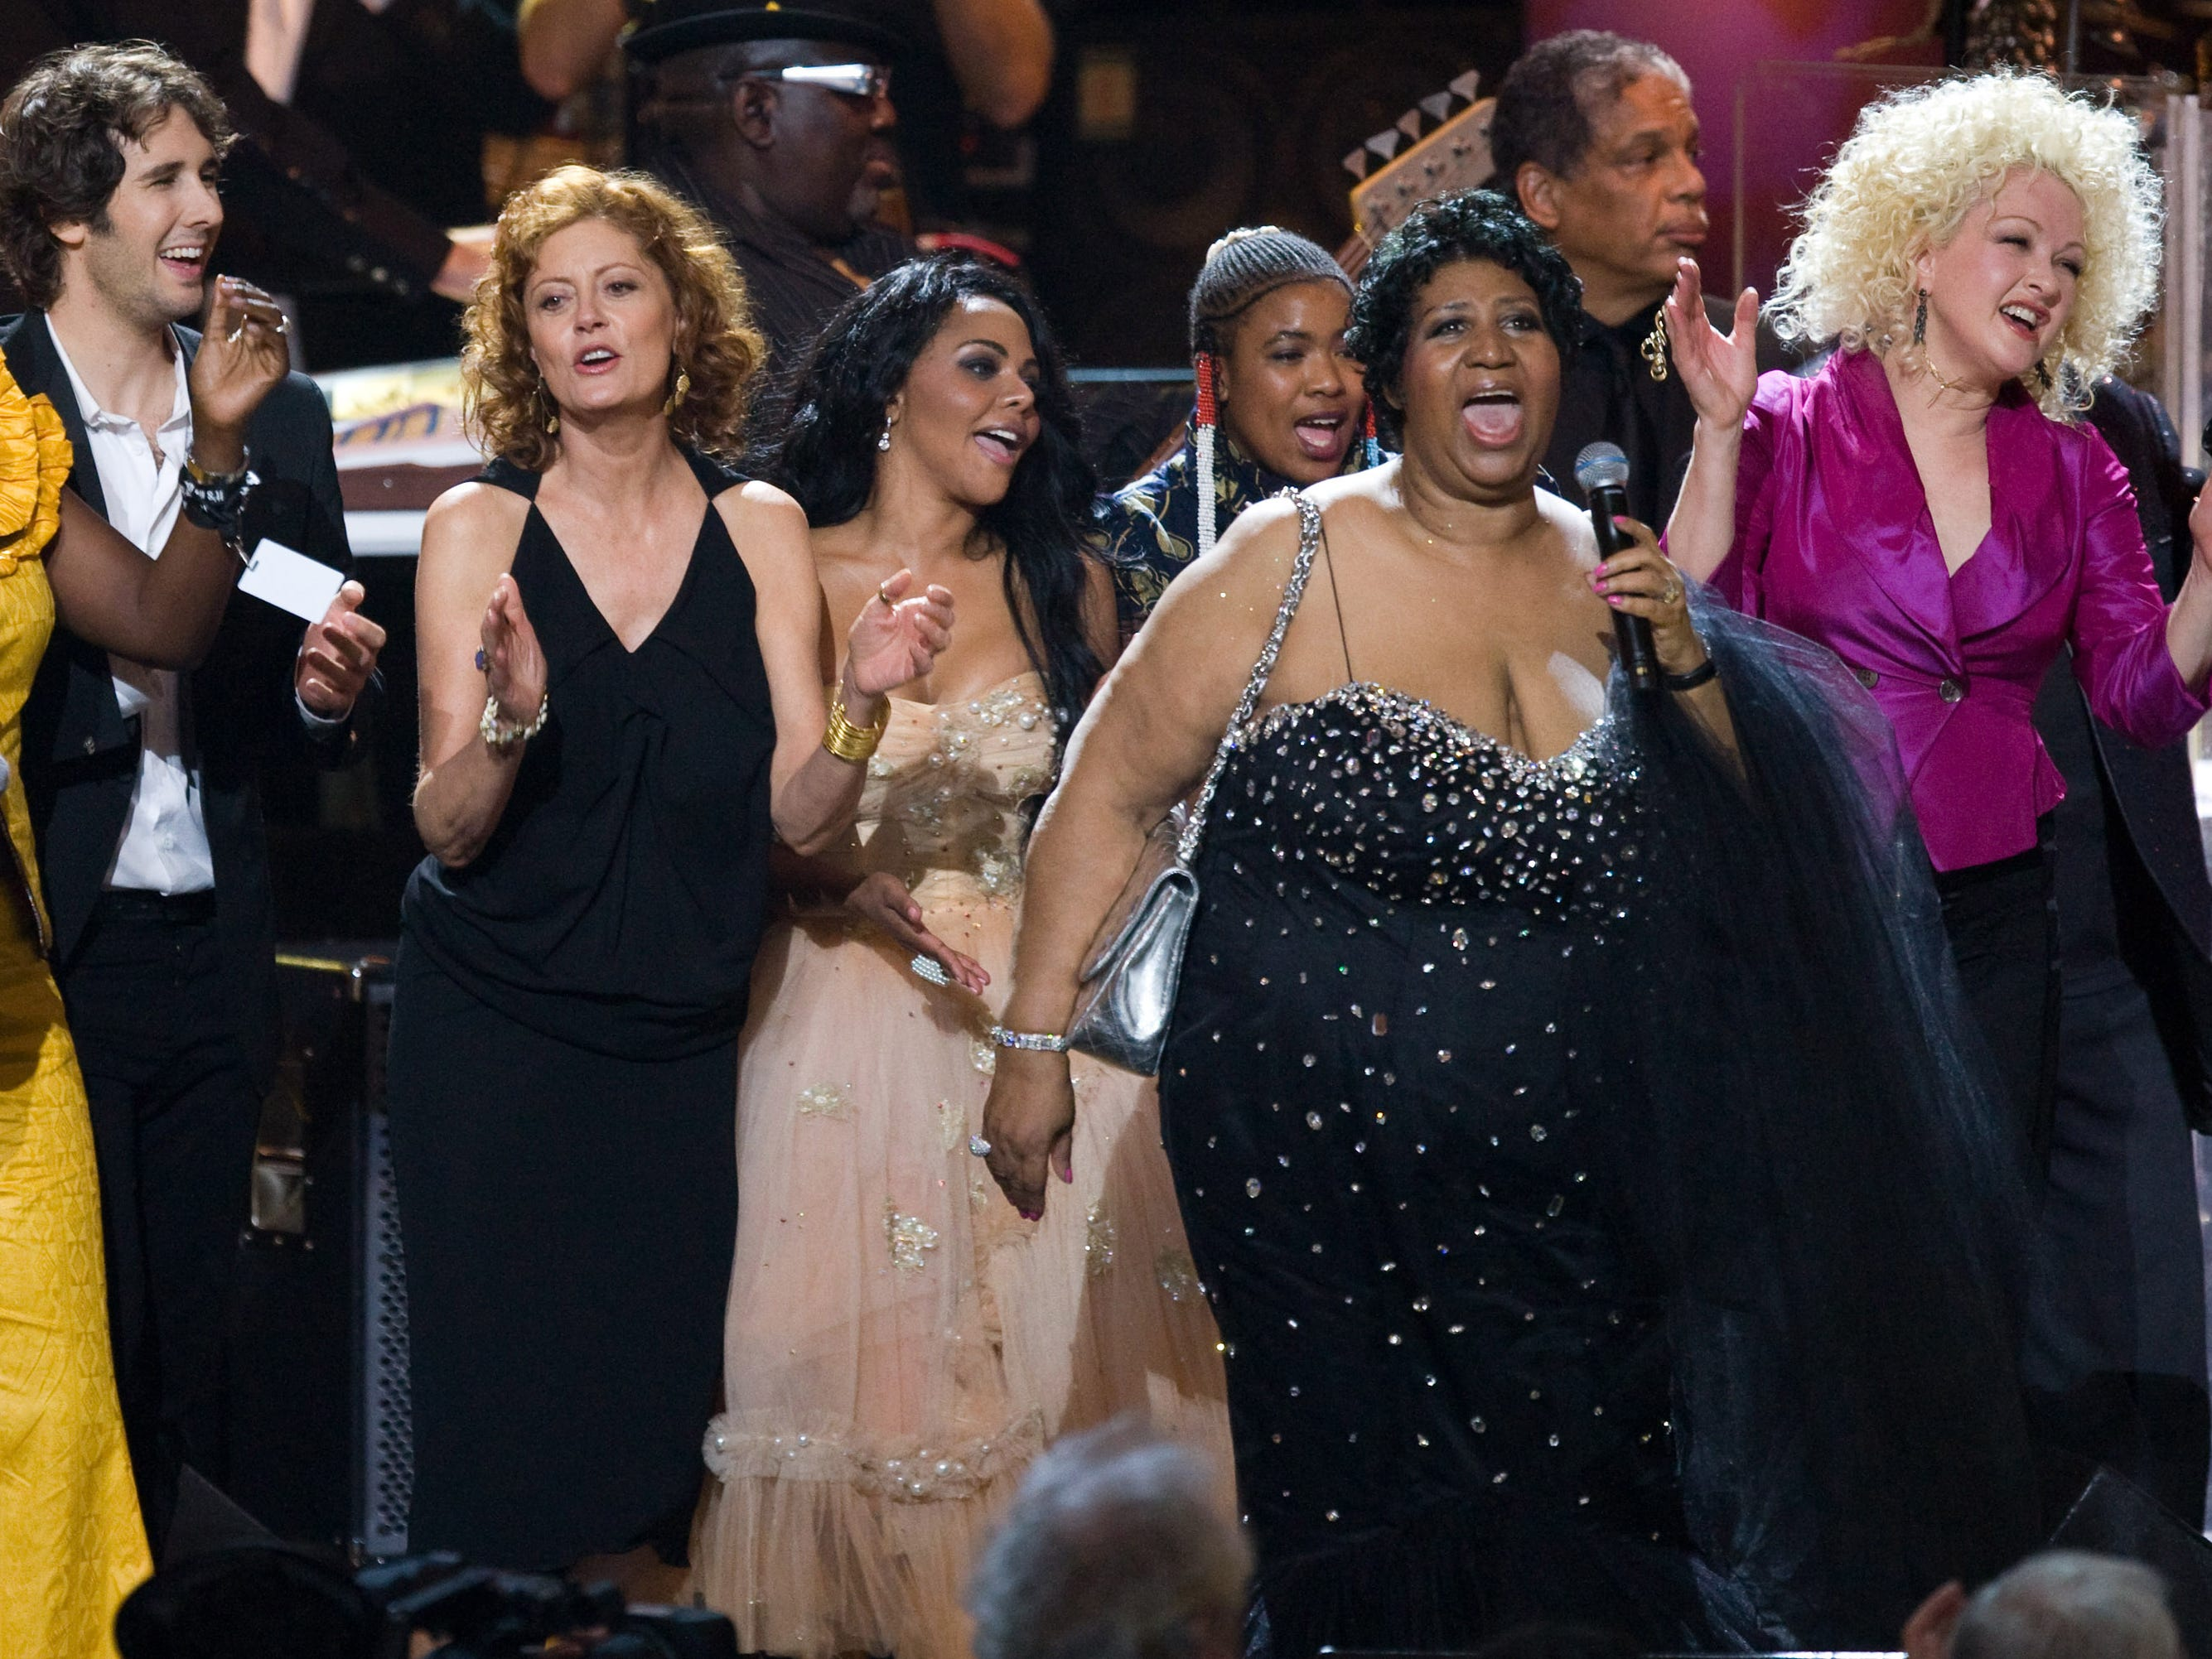 Josh Groban, Susan Sarandon, Little Kim, Aretha Franklin and Cyndi Lauper gather on stage for the finale of the  'Mandela Day' Concert to celebrate Nelson Mandela's 91st birthday at Radio City Music Hall in New York, Saturday, July 18, 2009. (AP Photo/Charles Sykes) ORG XMIT: NYCS710